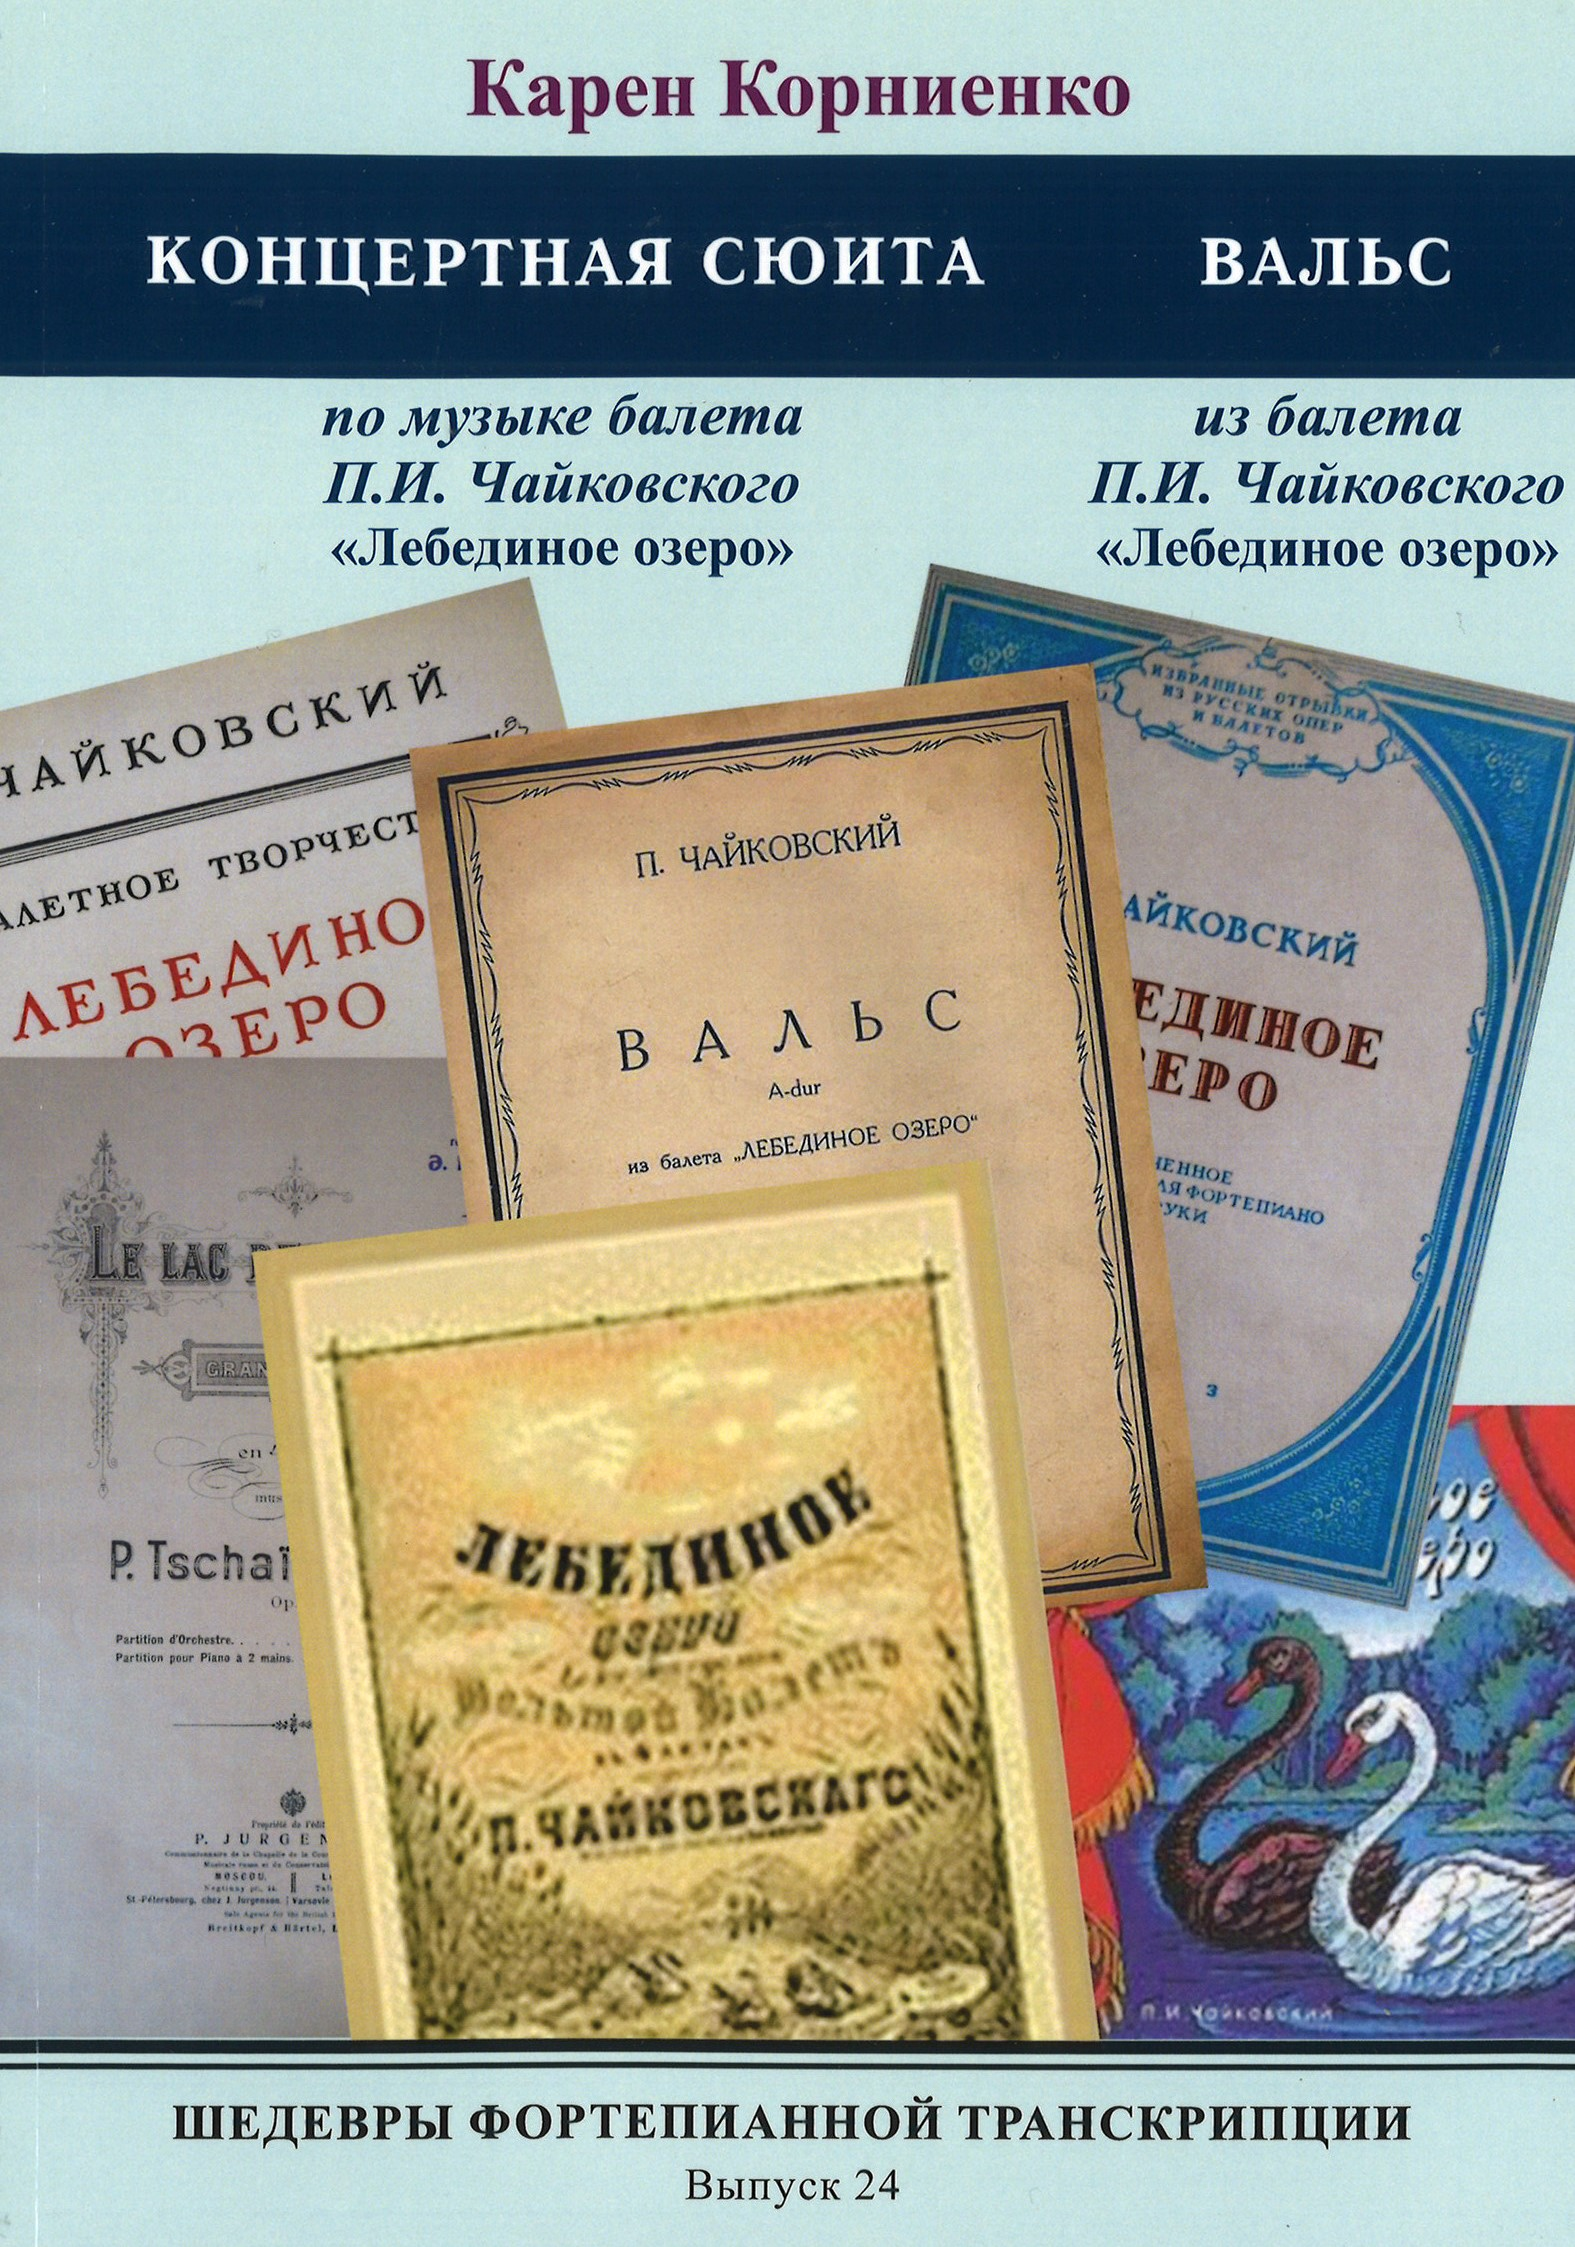 Masterpieces of piano transcription. Vol. 24. Concert Suite based on the ballet by Tchaikovsky Swan Lake; Waltz from the ballet by Tchaikovsky Swan Lake. +CD